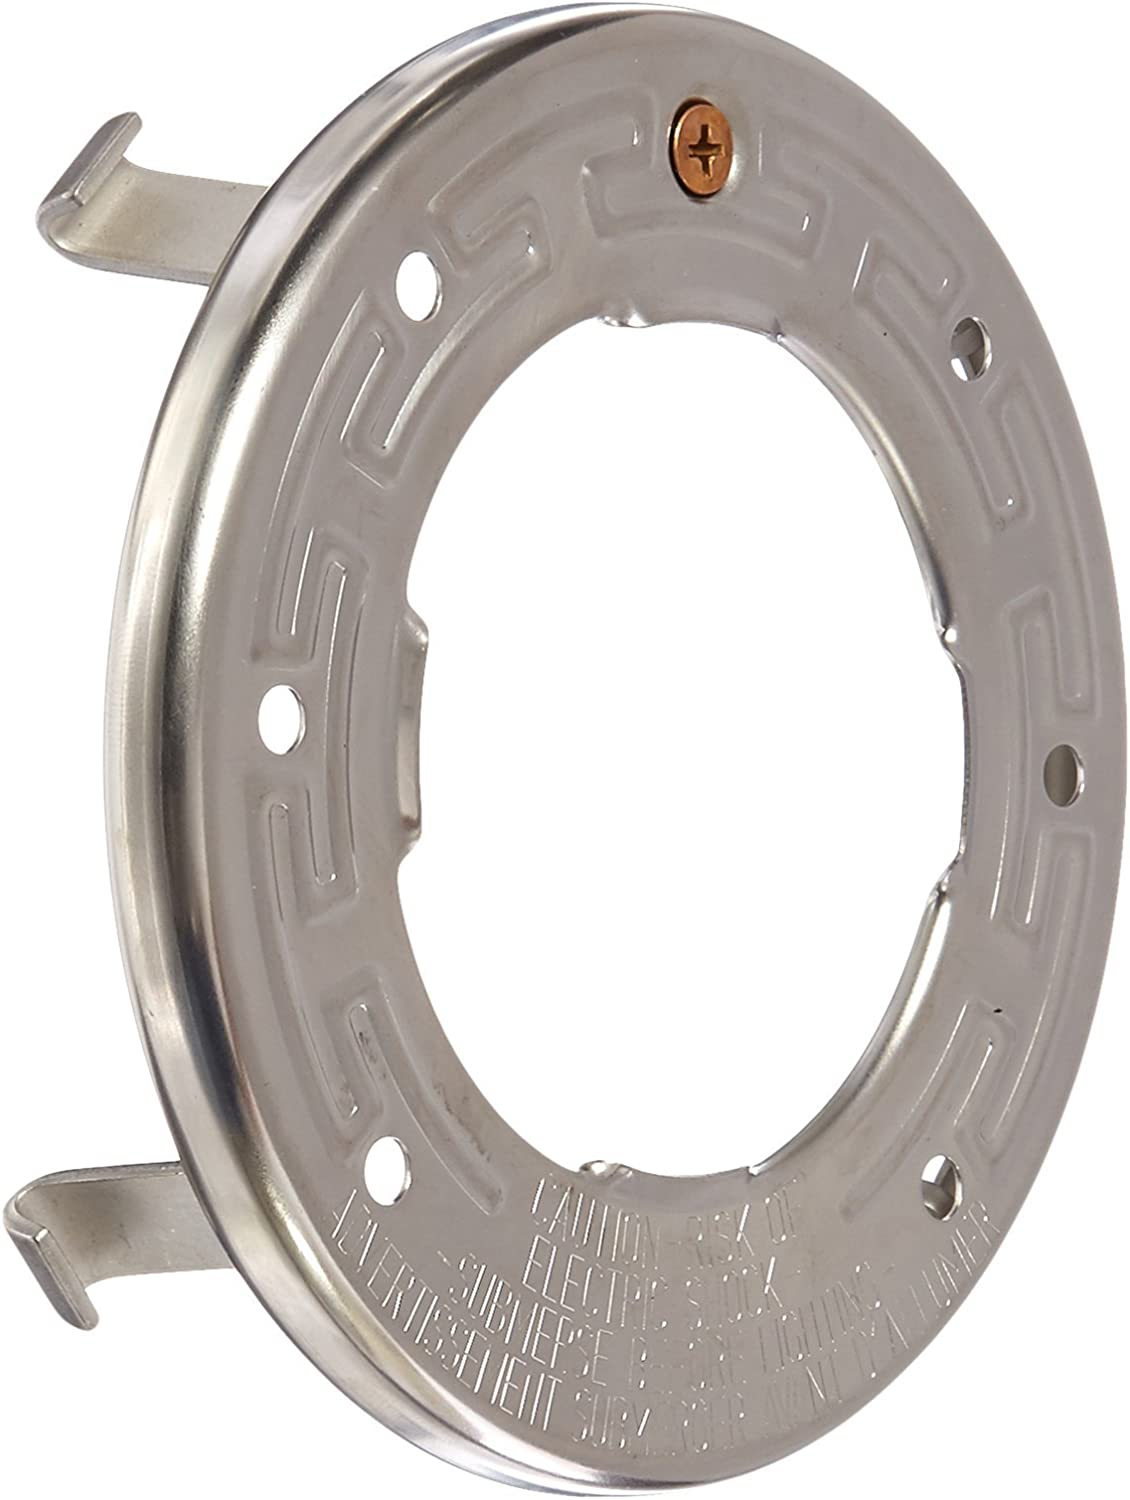 Pentair 79111600 Stainless Steel Assembly Face Replacement Ring Houston Online limited product Mall